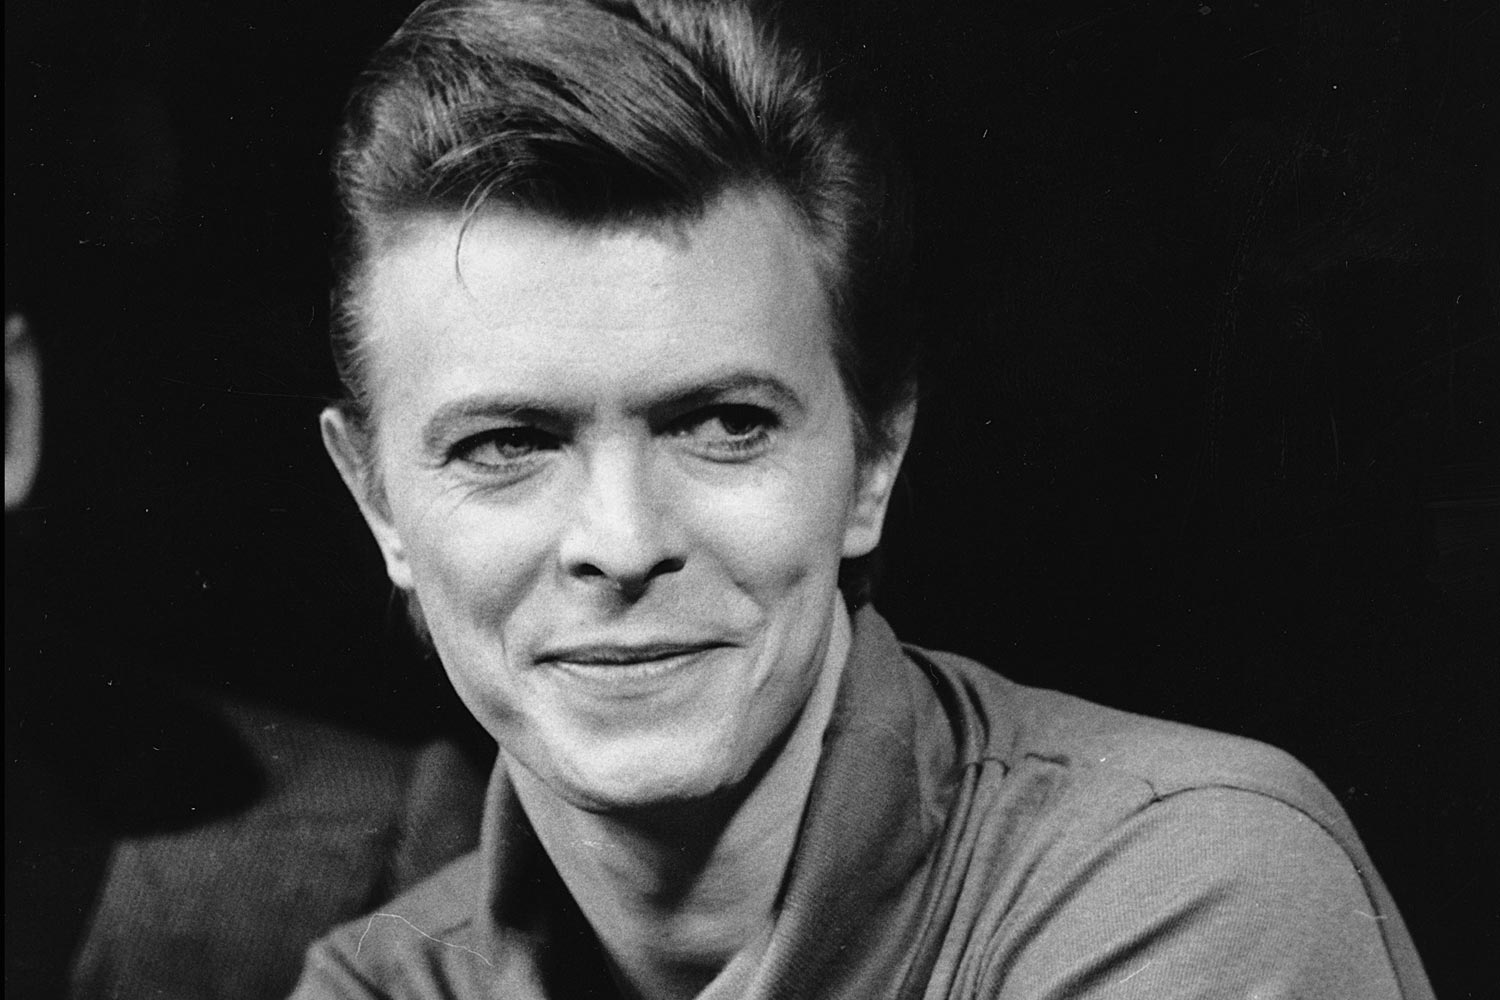 """FILE i In this Sept. 17, 1980, file photo, David Bowie listens during a news conference after a rehearsal at the Booth Theater in New York. Bowie was appearing in the Broadway production of """"The Elephant Man."""" Bowie, the innovative and iconic singer whose illustrious career lasted five decades, died Monday, Jan. 11, 2016, after battling cancer for 18 months. He was 69. (AP Photo/Marty Lederhandler, FIle) ORG XMIT: NYET911"""